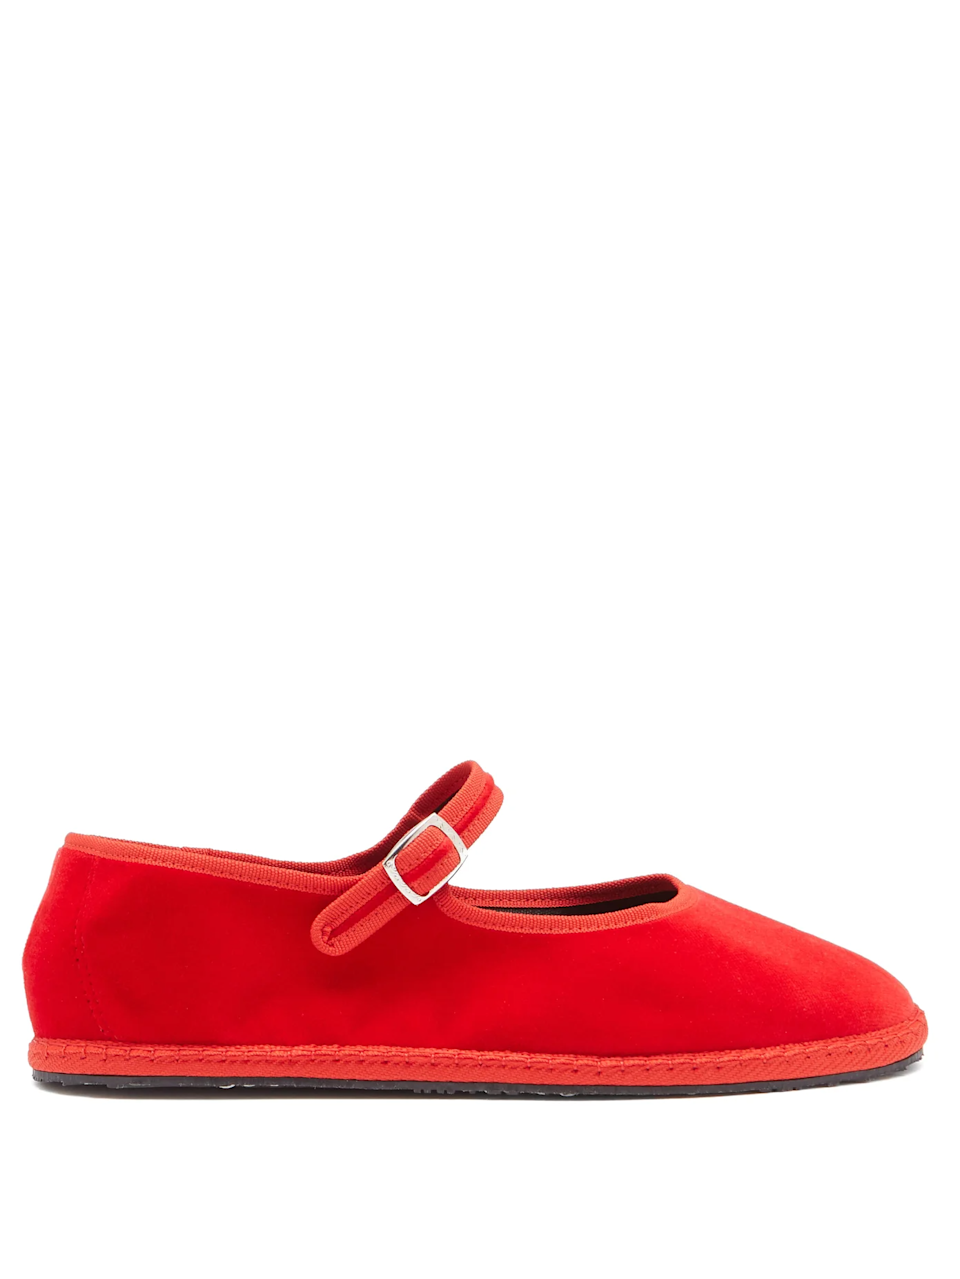 "<br><br><strong>Vibi Venezia</strong> Mary-Jane Velvet Furlane Flats, $, available at <a href=""https://go.skimresources.com/?id=30283X879131&url=https%3A%2F%2Fwww.matchesfashion.com%2Fus%2Fproducts%2FVibi-Venezia-Mary-Jane-velvet-furlane-flats-1399063"" rel=""nofollow noopener"" target=""_blank"" data-ylk=""slk:MatchesFashion"" class=""link rapid-noclick-resp"">MatchesFashion</a>"